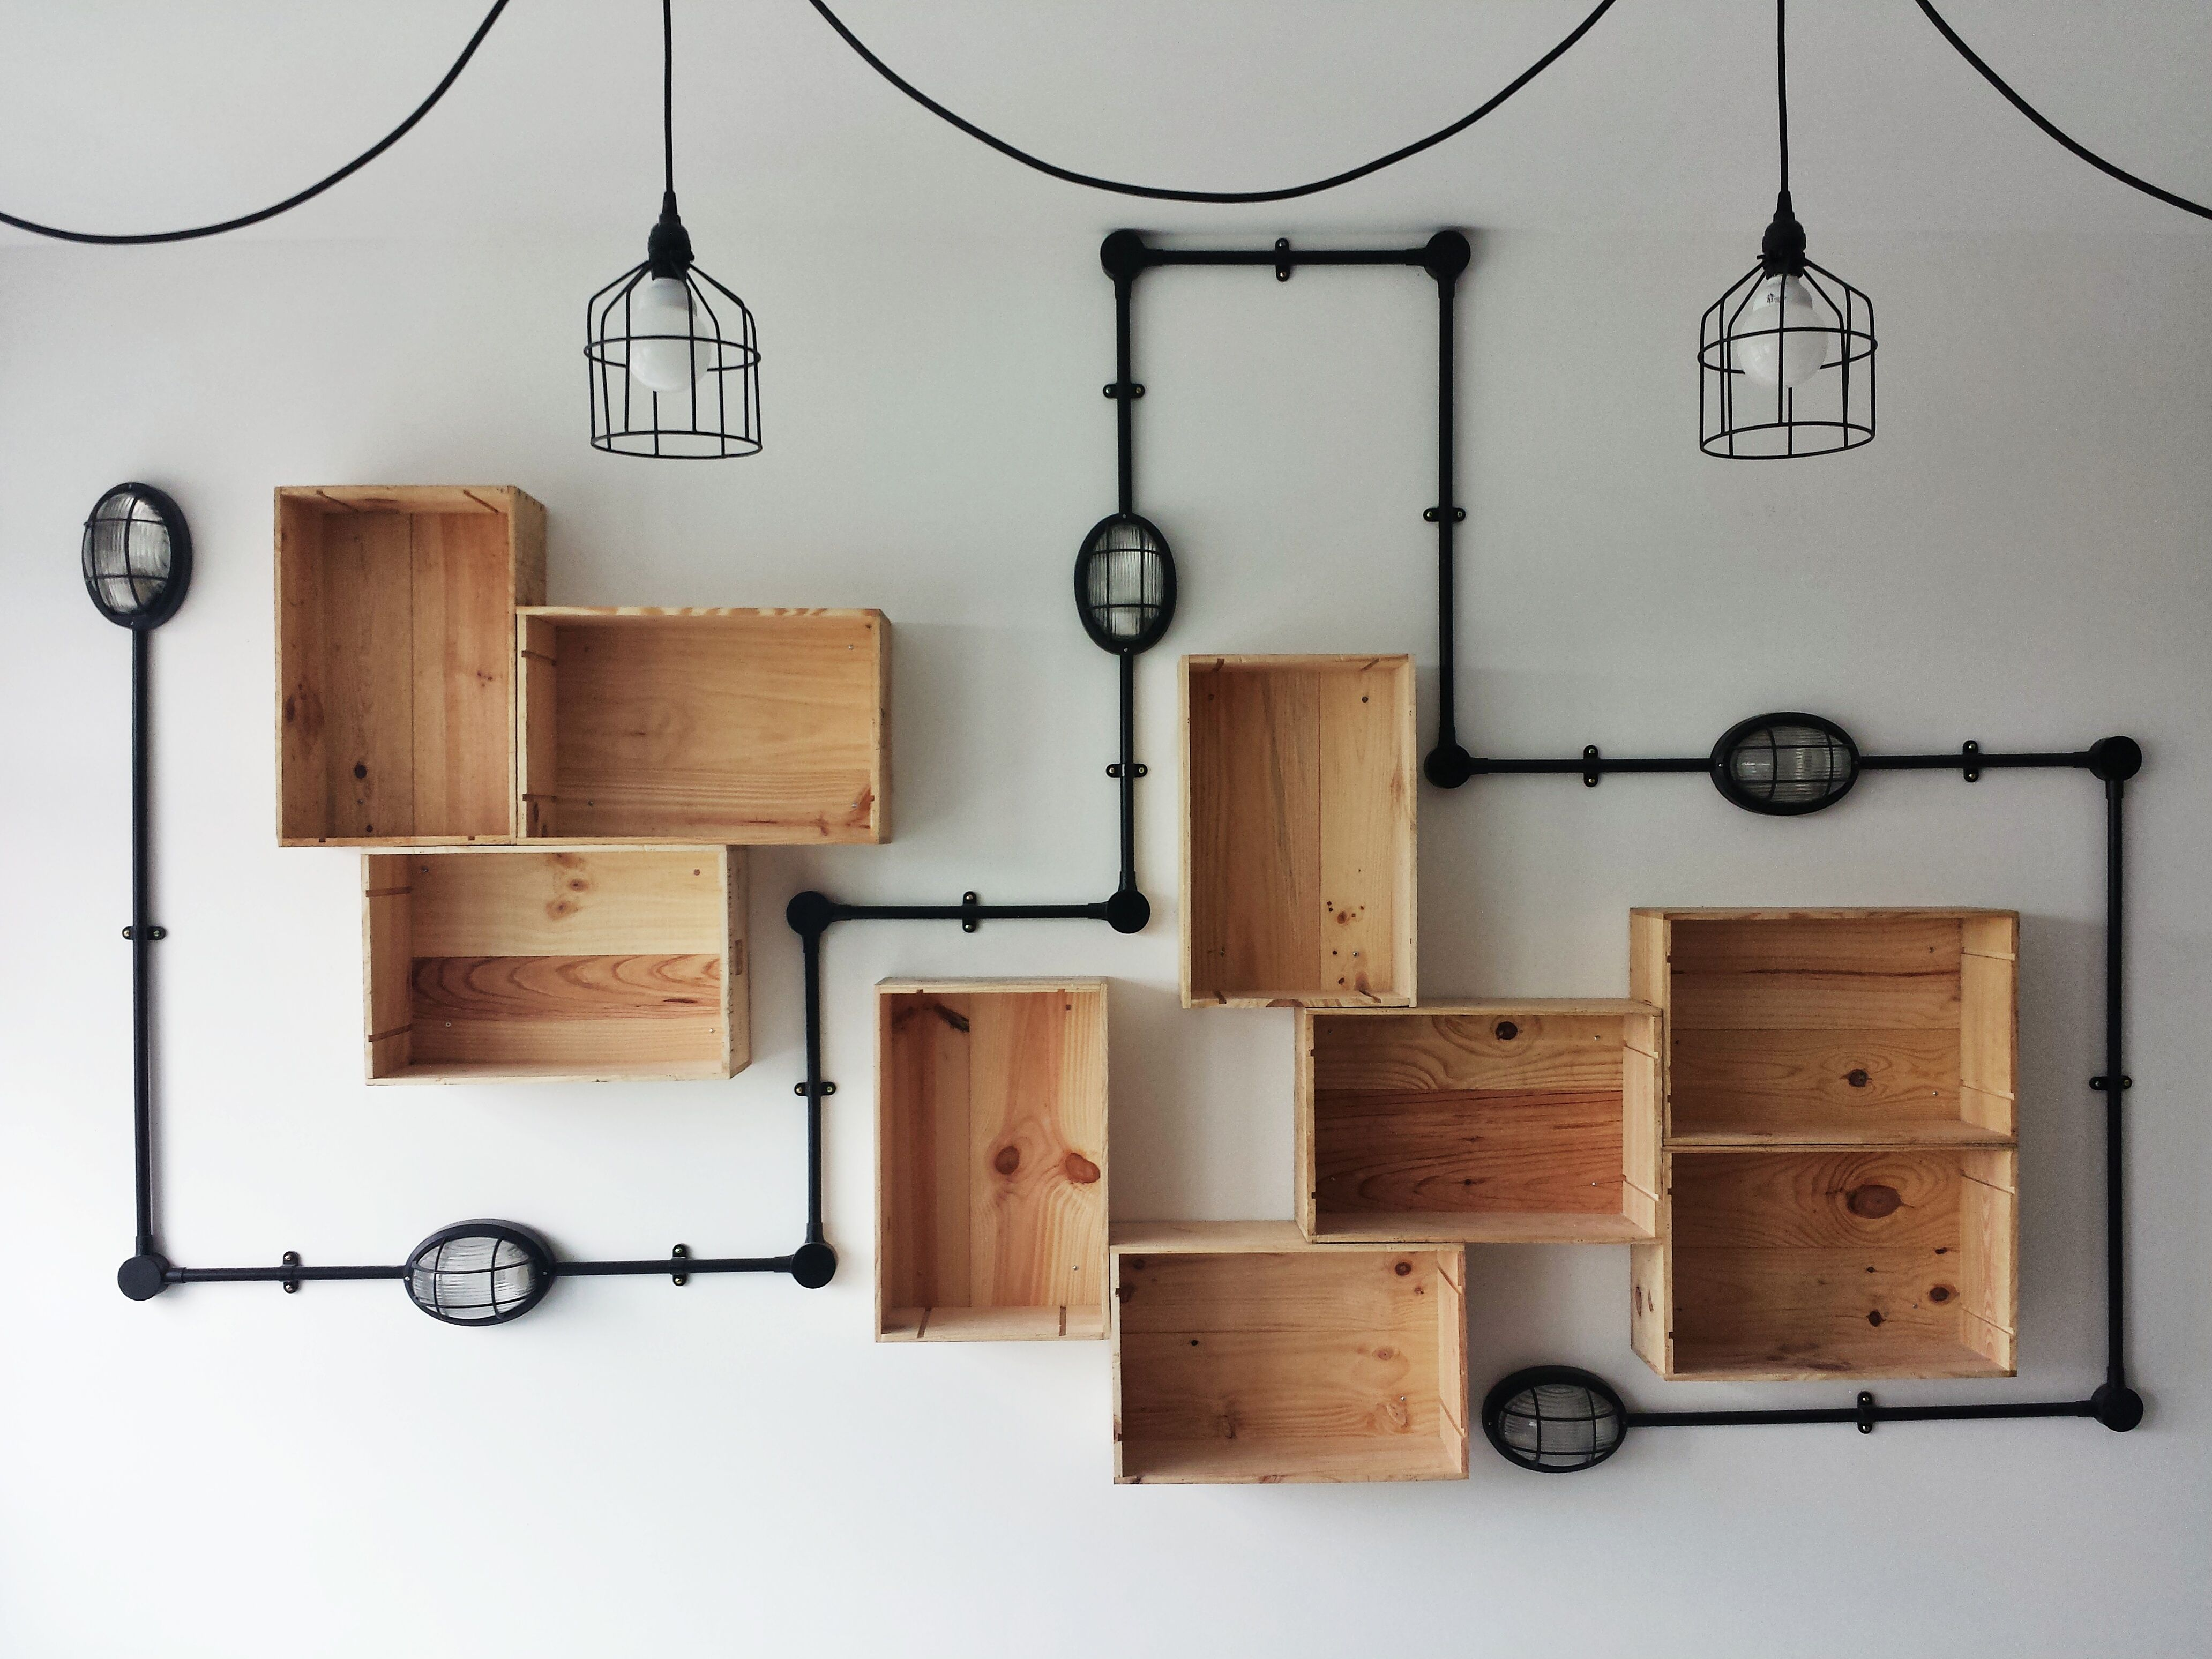 used industrial furniture. Industrial Themed Living Room In Singapore HDB. Wine Crates Used As Shelving And Decor Pieces Furniture P